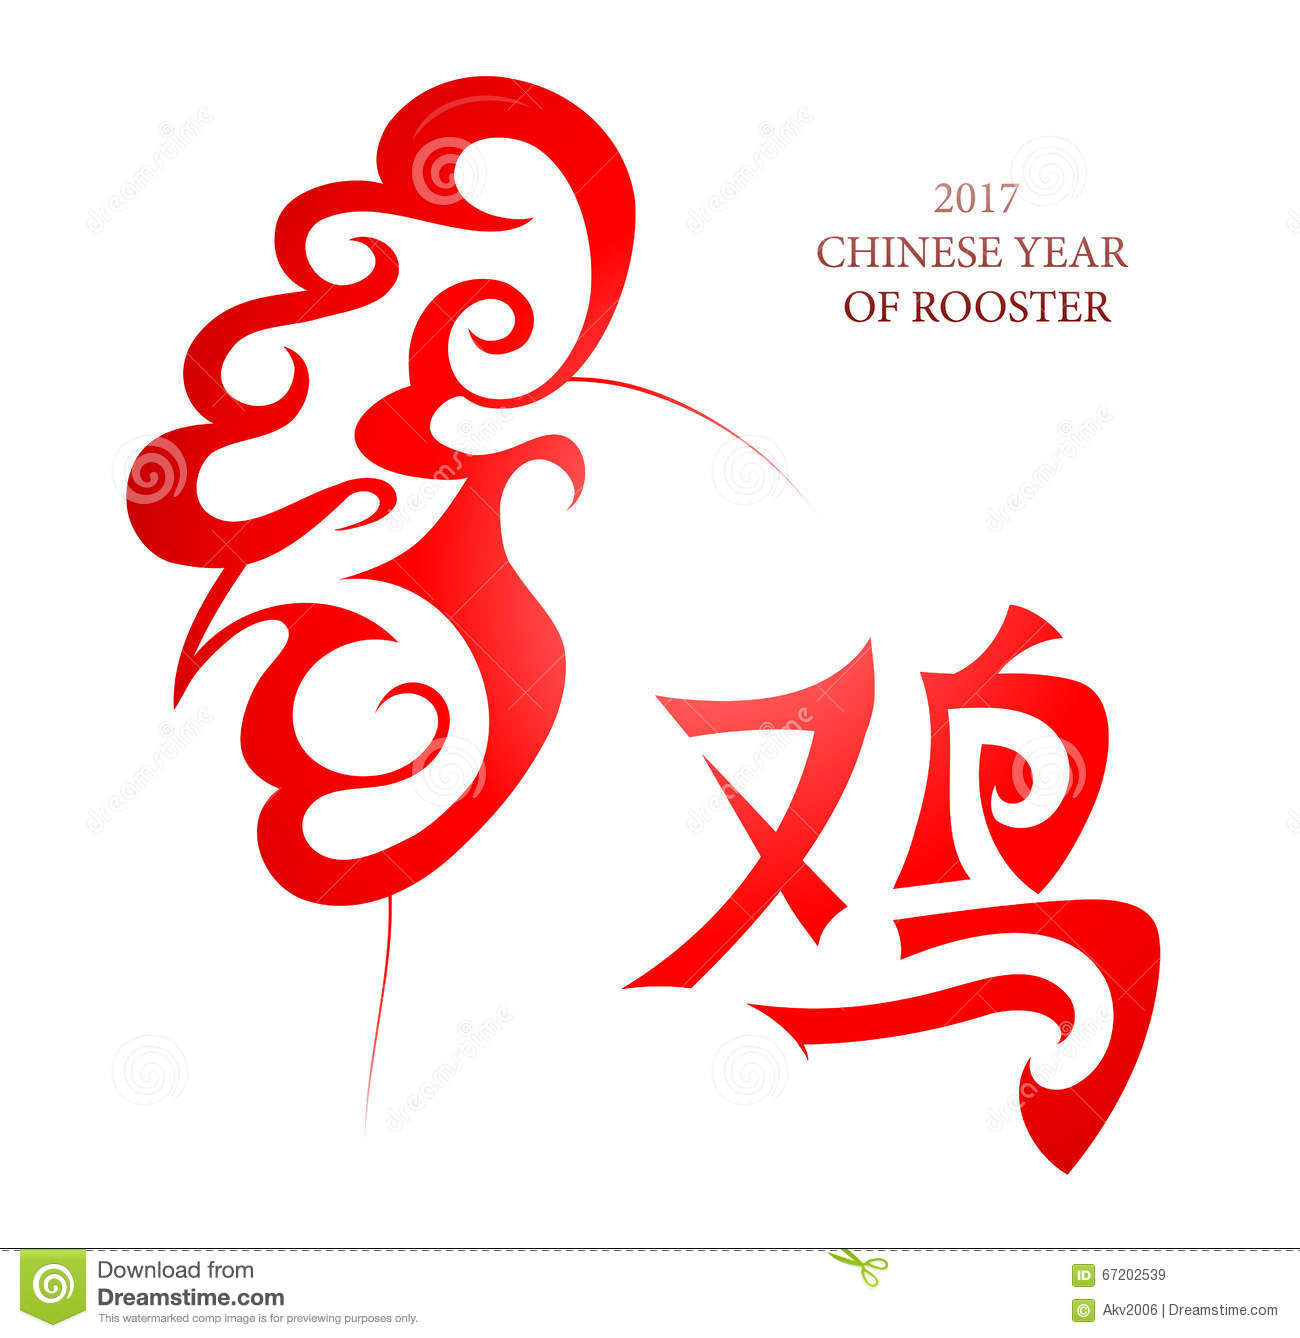 chinese new year 2017 rooster horoscope symbol - Chinese New Year 1993